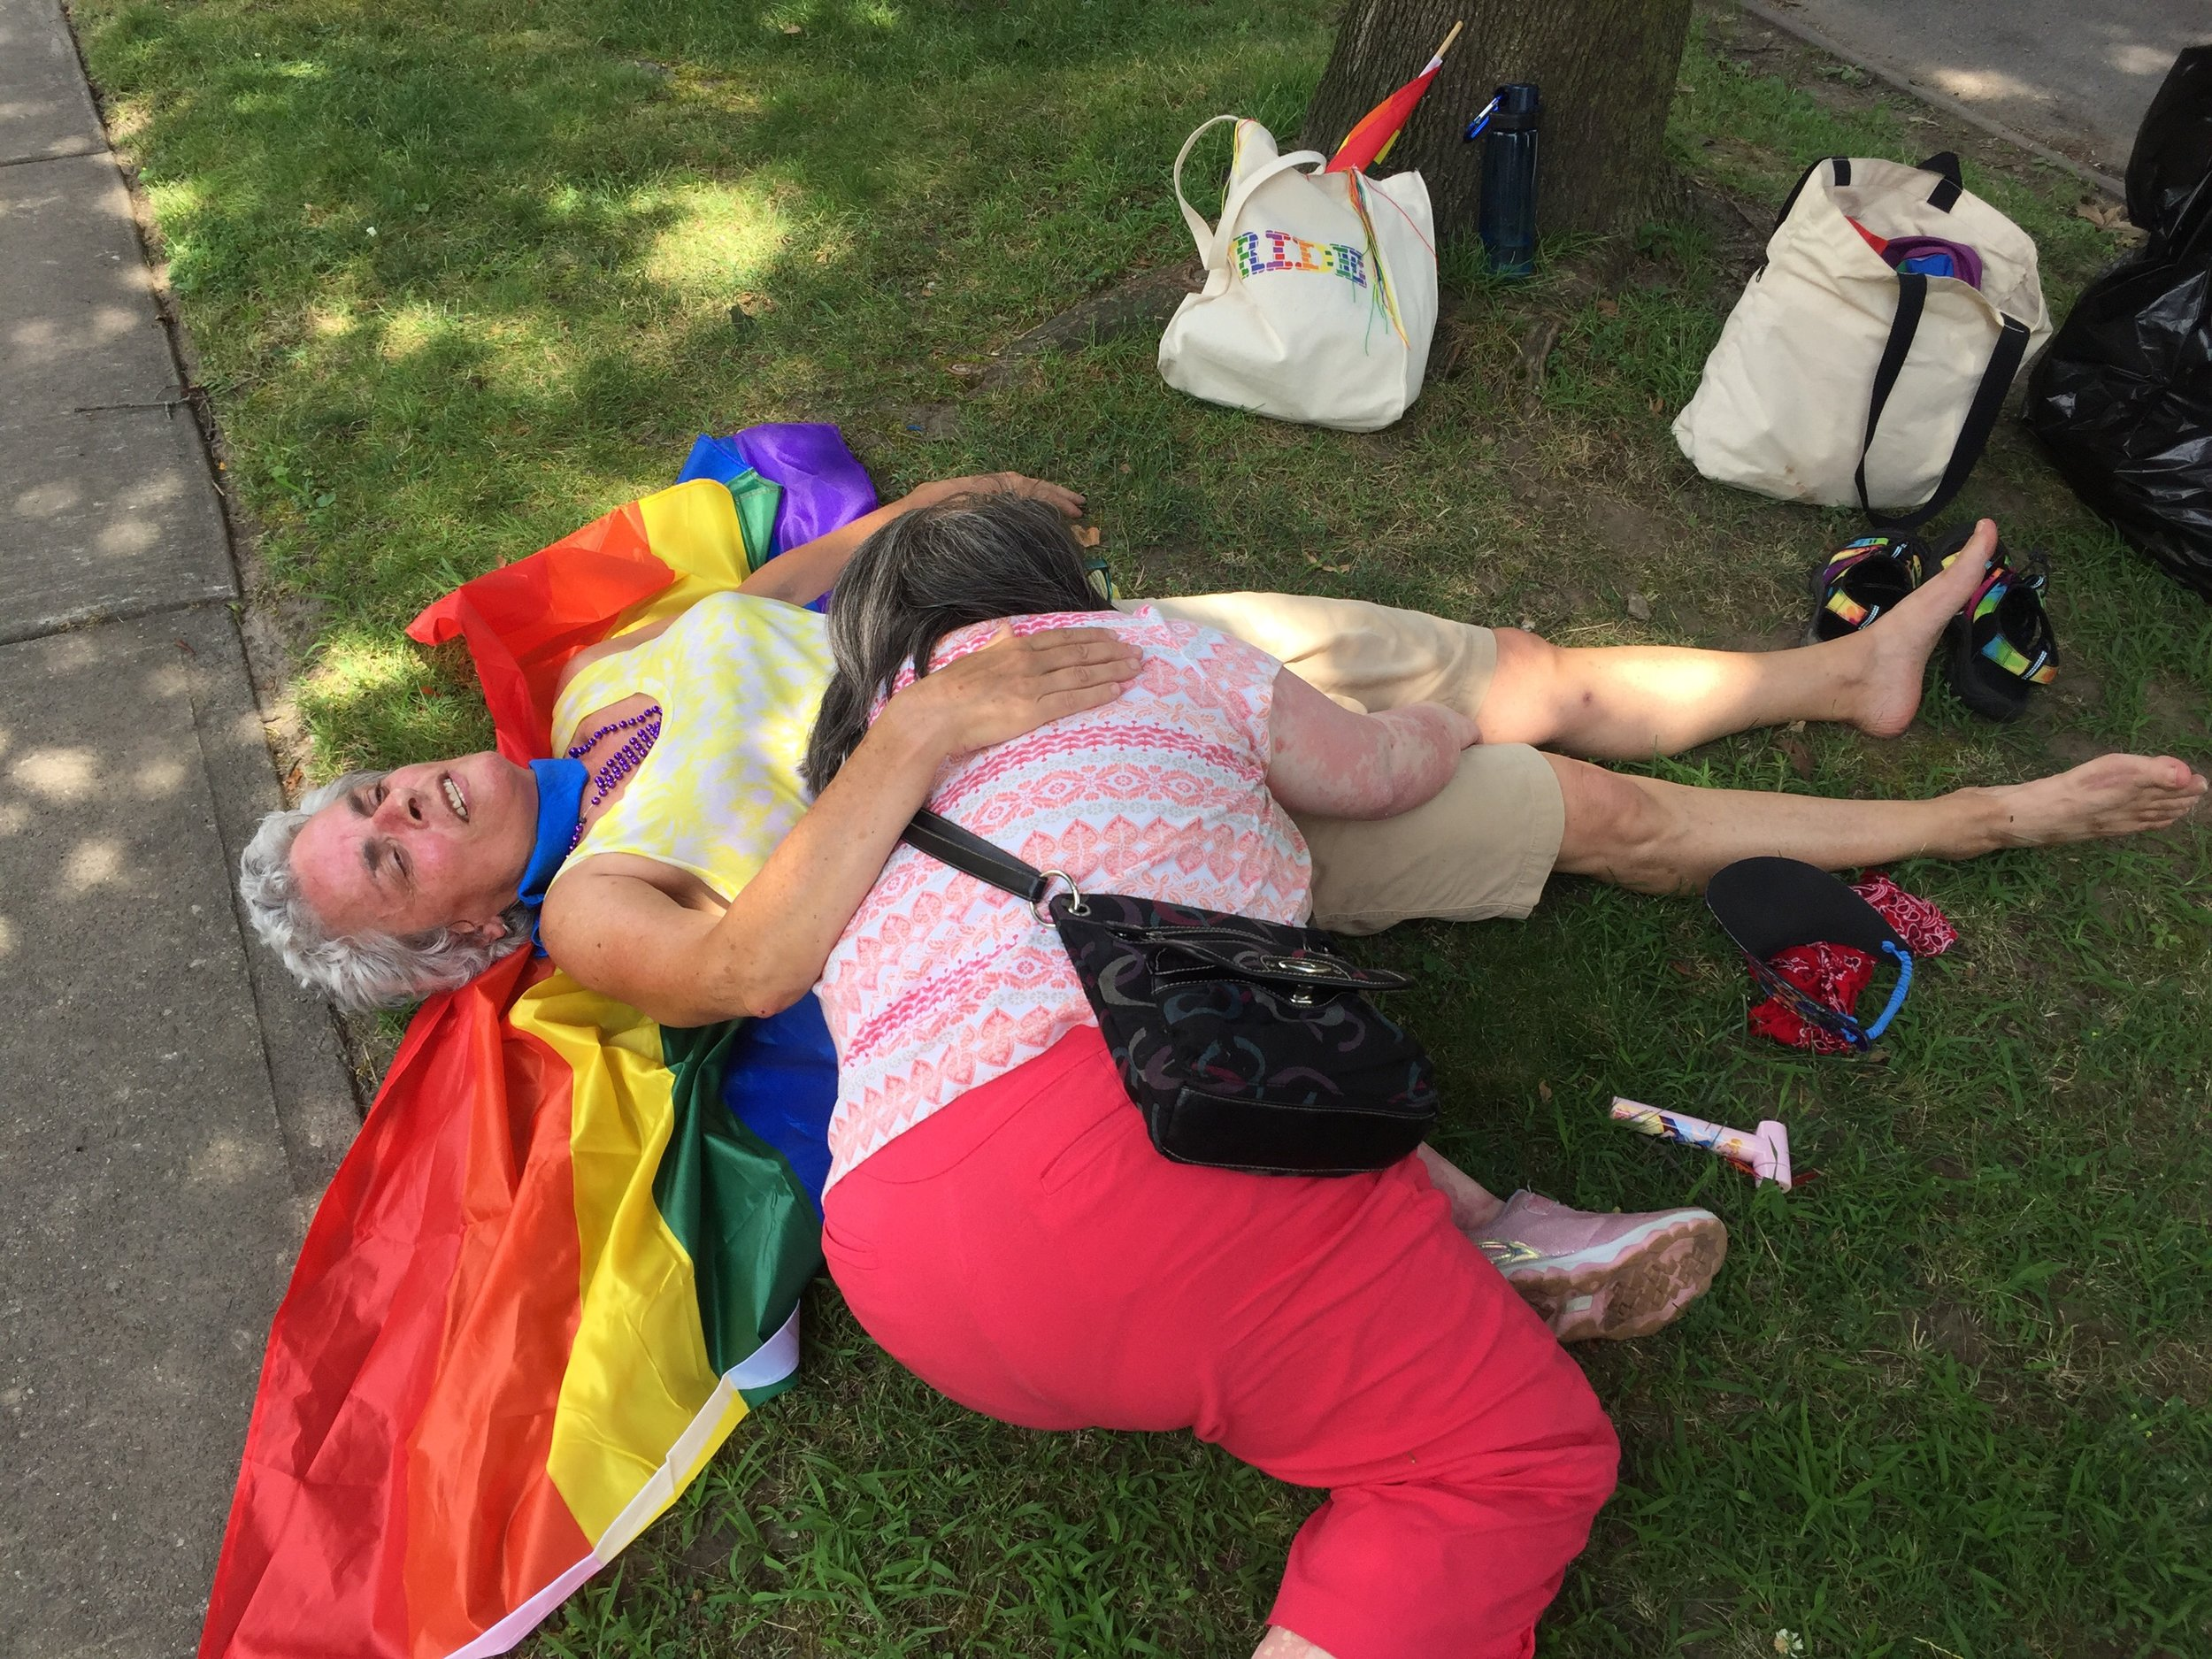 2019 07-20 Pride parade - Debbie & Lizzie ready for a nap.jpeg